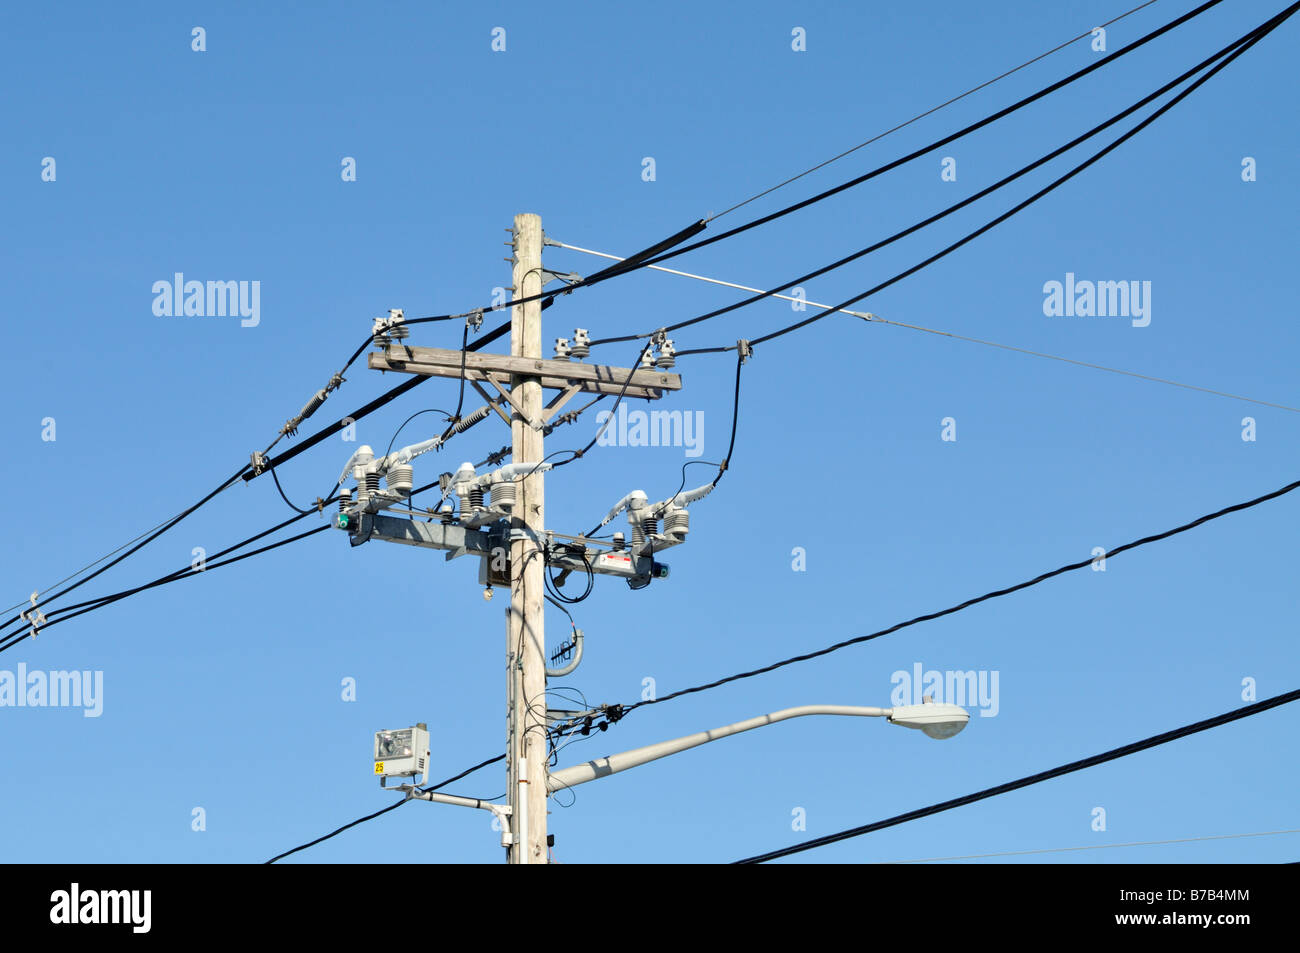 Electric Telephone Stock Photos Images Wiring Sky Box And Pole With Wires Insulators Cables Street Lamp Image